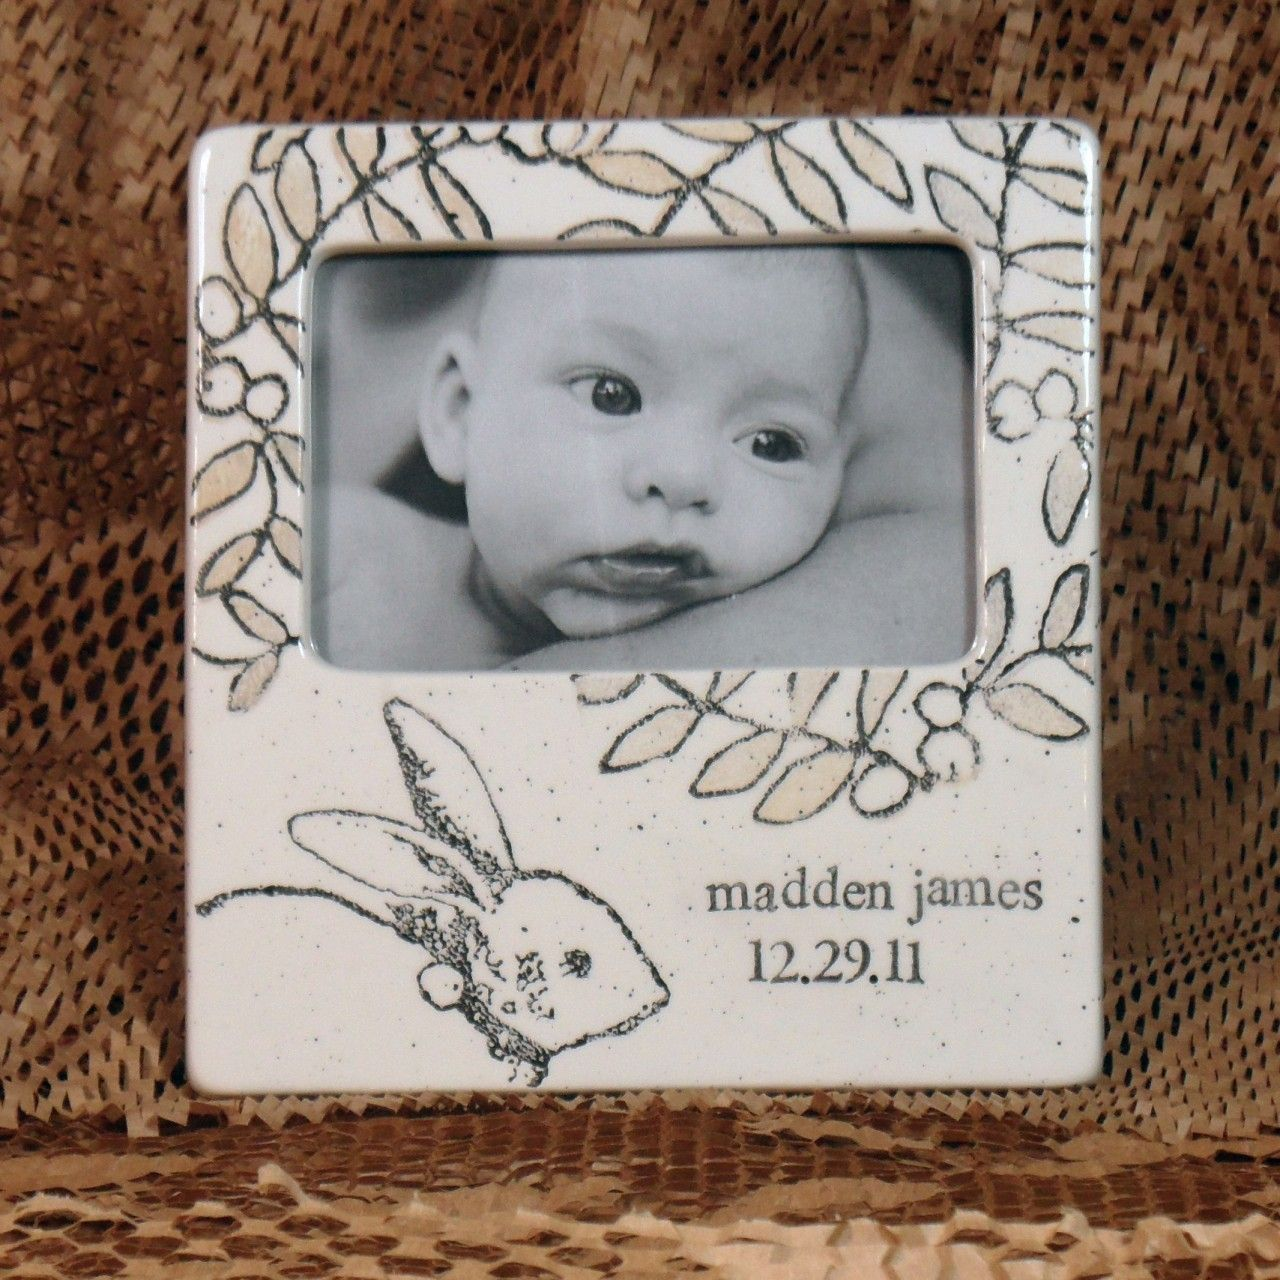 Museware Pottery - Baby Bunny Photo Frame, $80.00 (http://www.musewarepottery.com/baby-gifts/personalized-baby-bunny-photo-frame/)